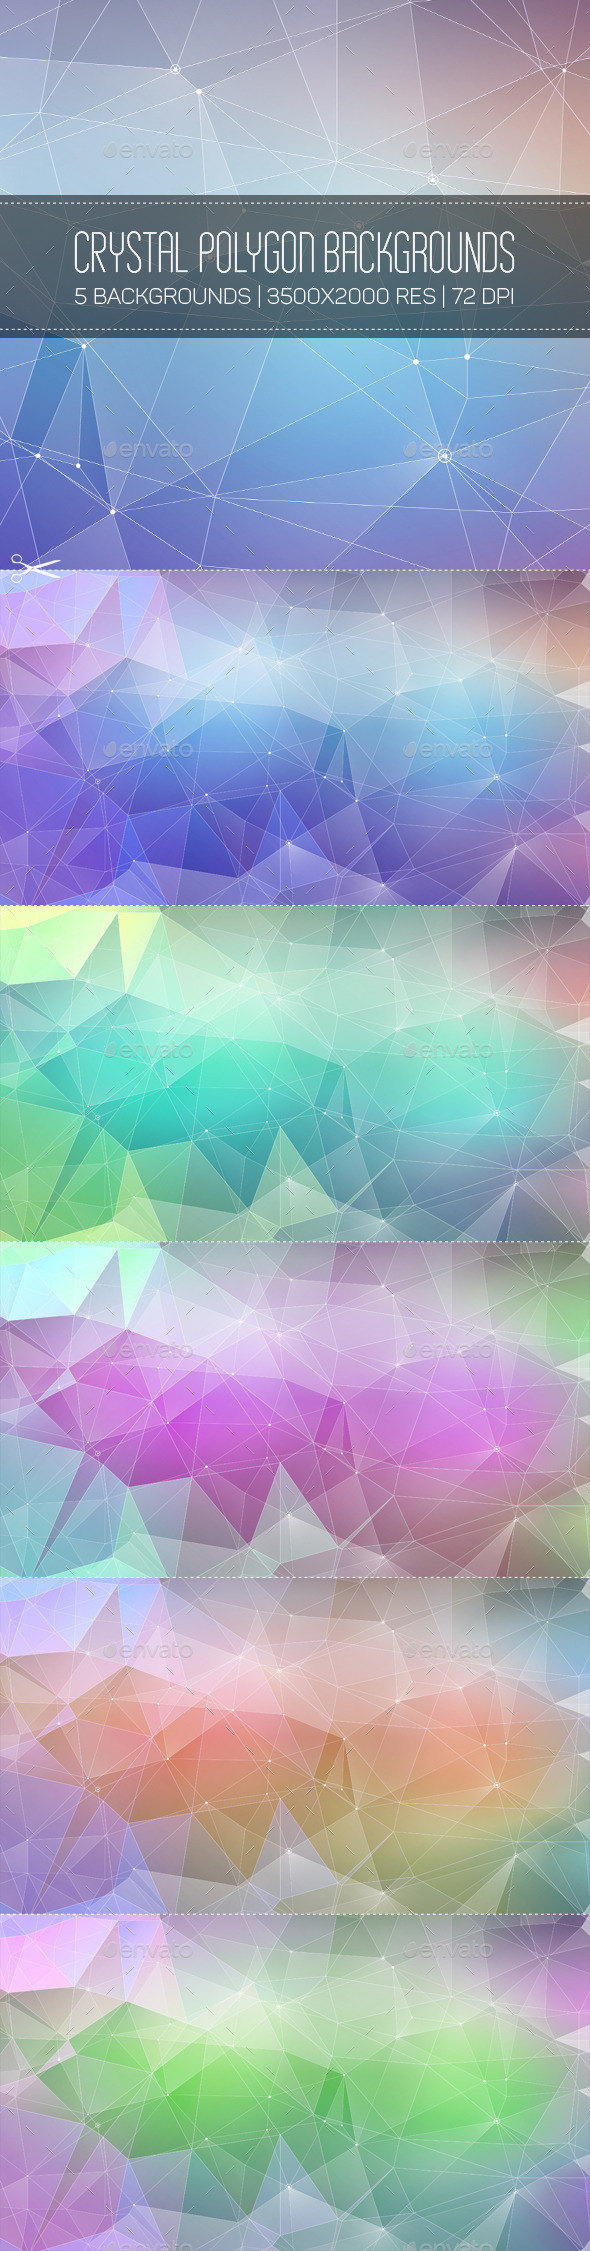 Crystal Polygon Backgrounds - Abstract Backgrounds